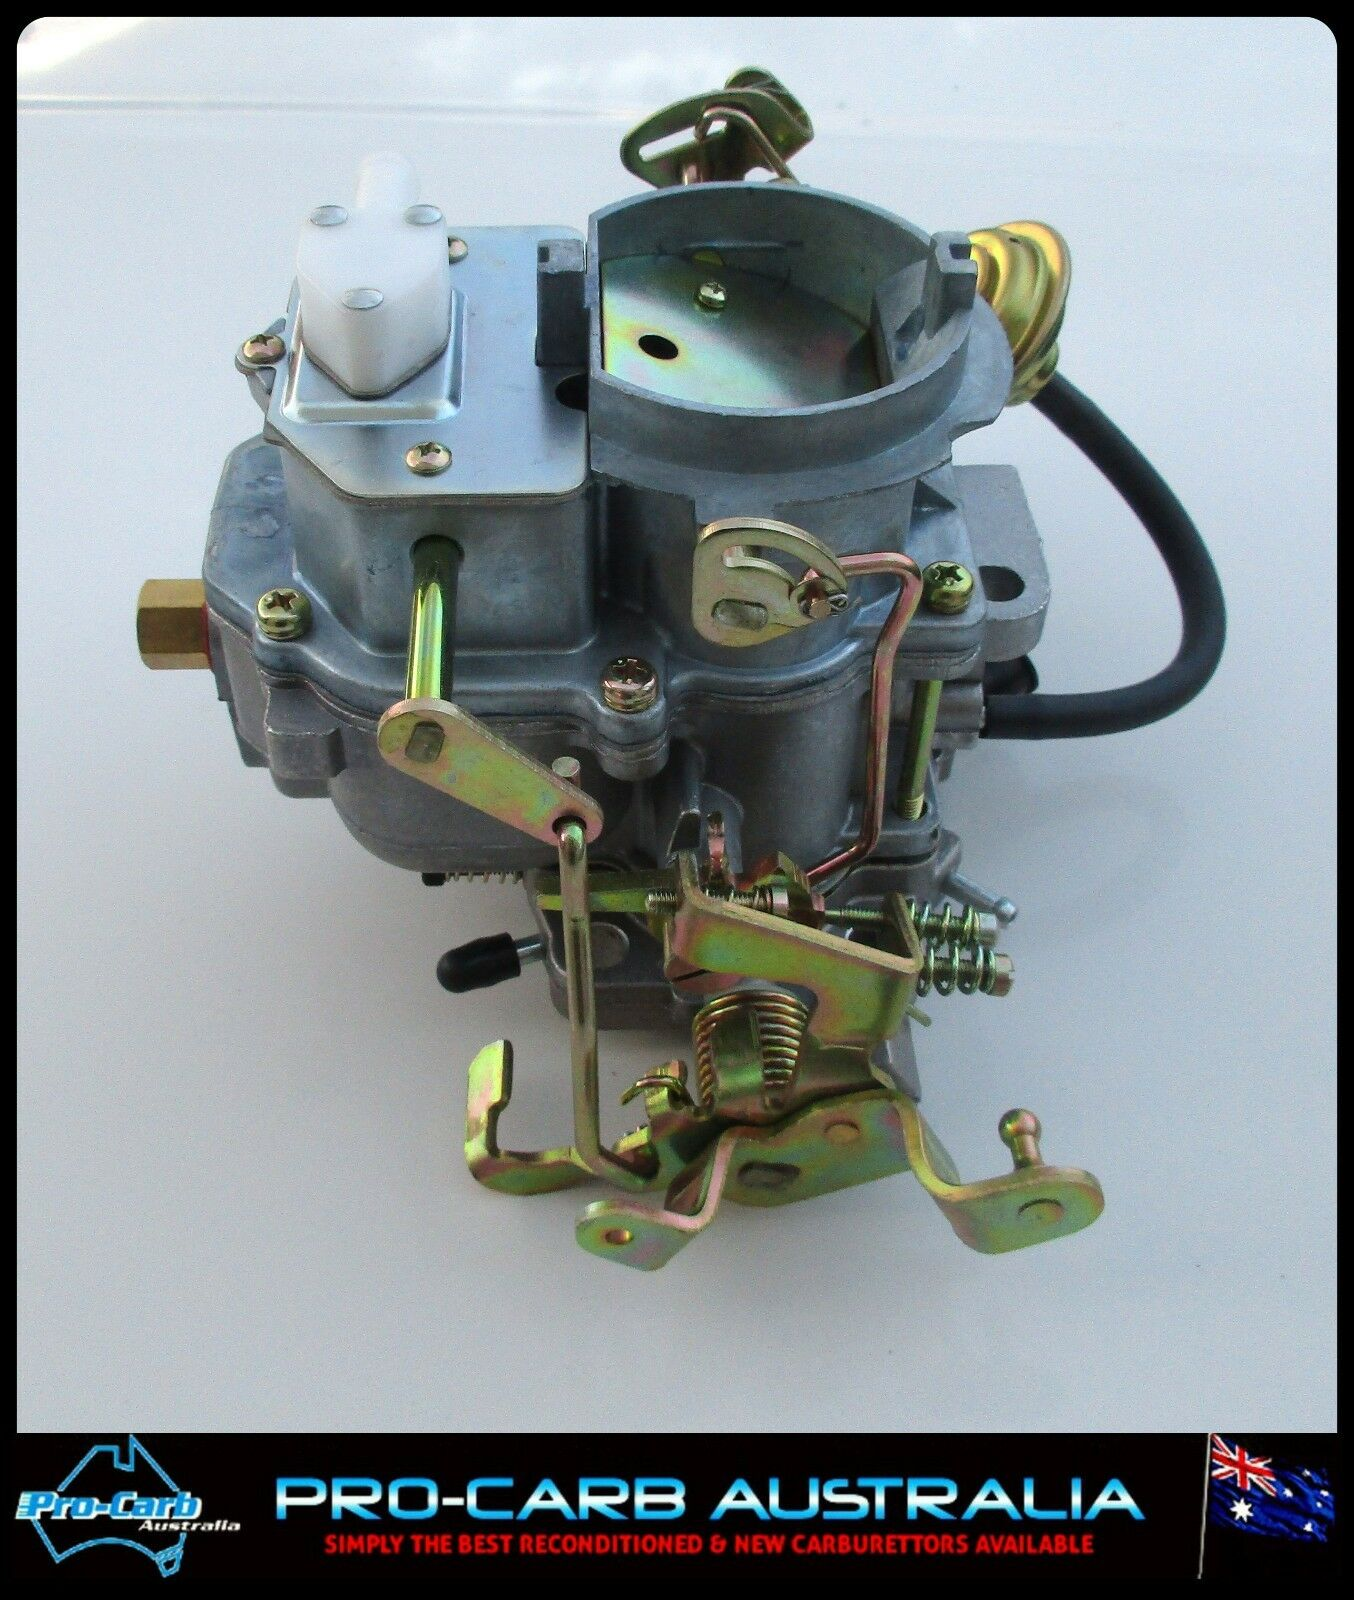 Details about VALIANT VE VF 6CYL 2BBL BBD E/C UPGRADE CARTER TYPE CHRYSLER  CARBURETTOR CARBY